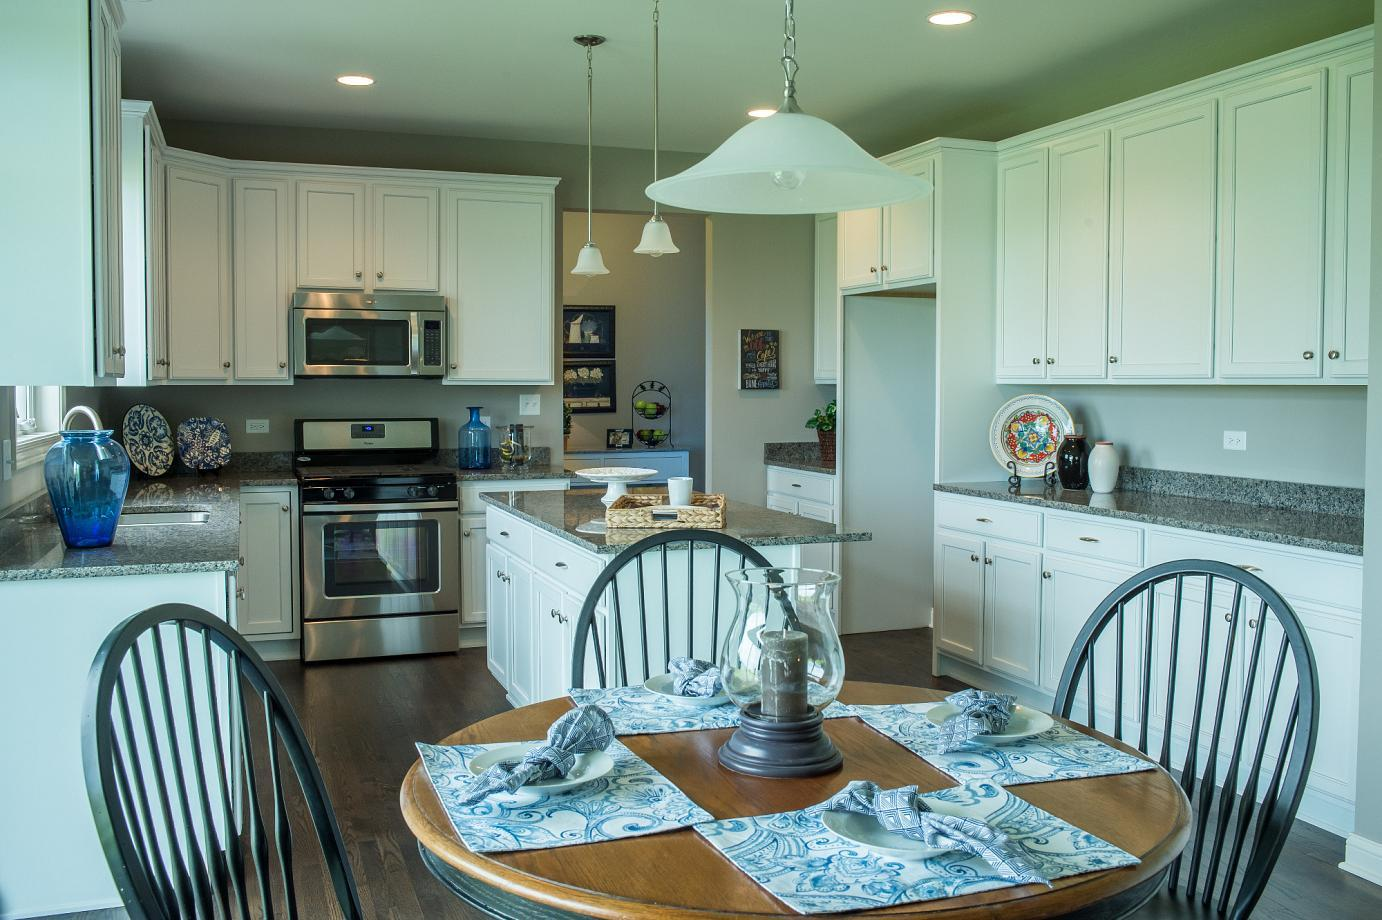 Kitchen featured in the Danbury By Gallagher and Henry in Chicago, IL